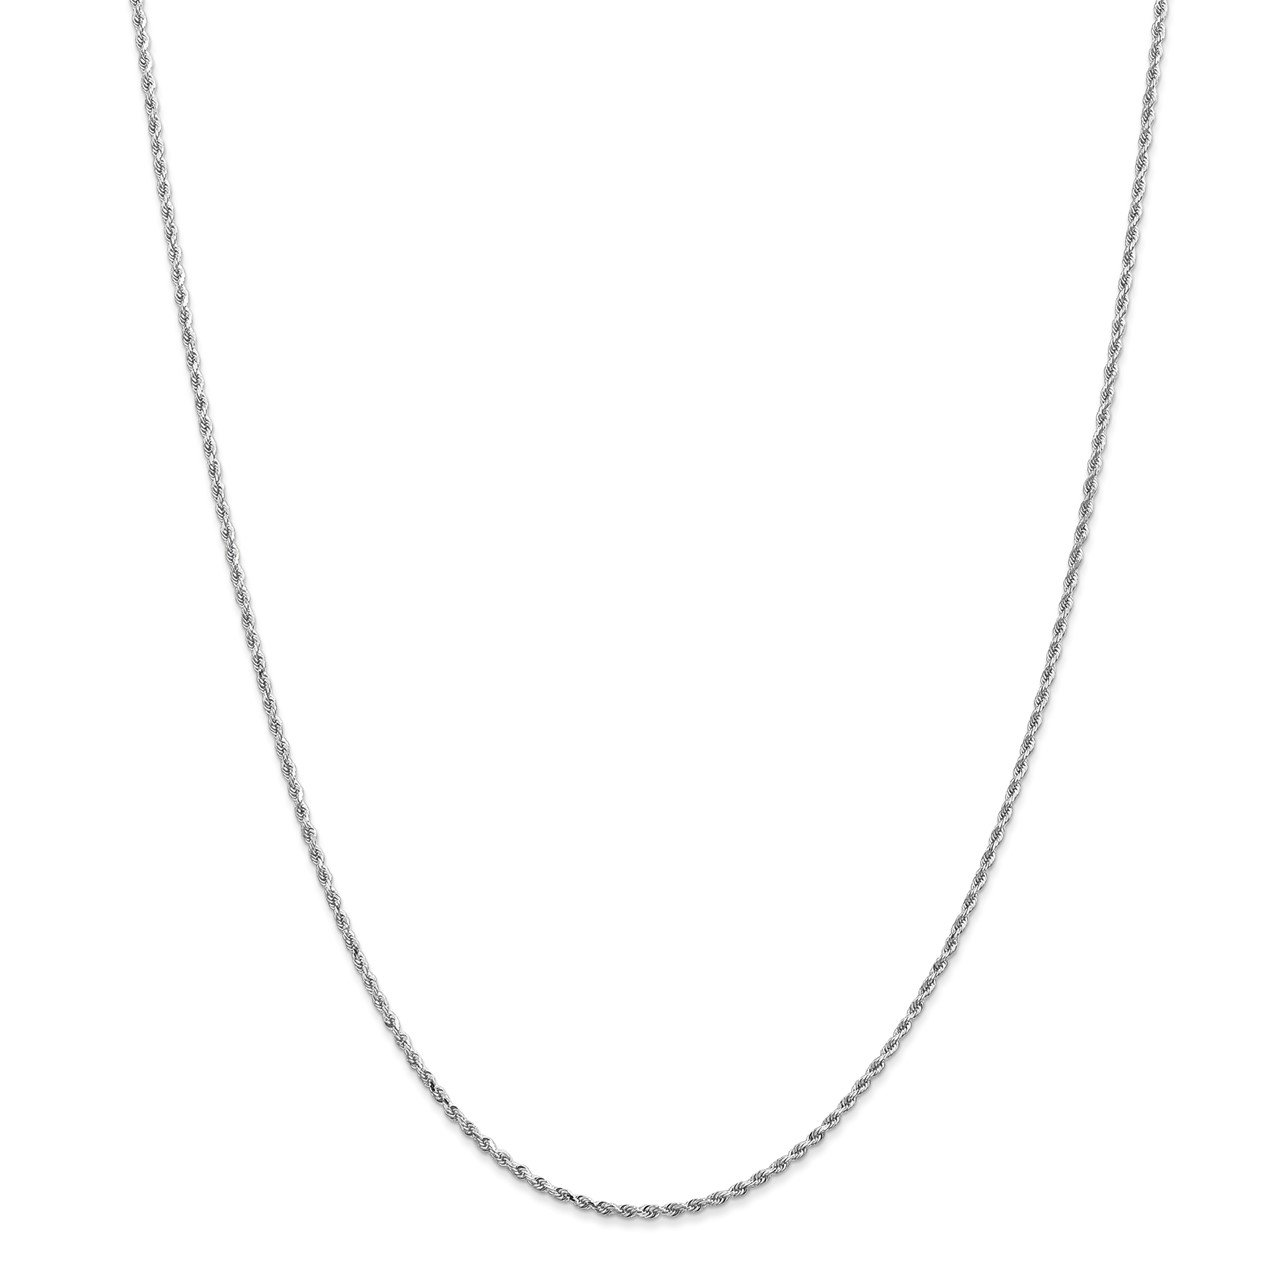 14k White Gold 1.5mm D/C Rope with Lobster Clasp Chain